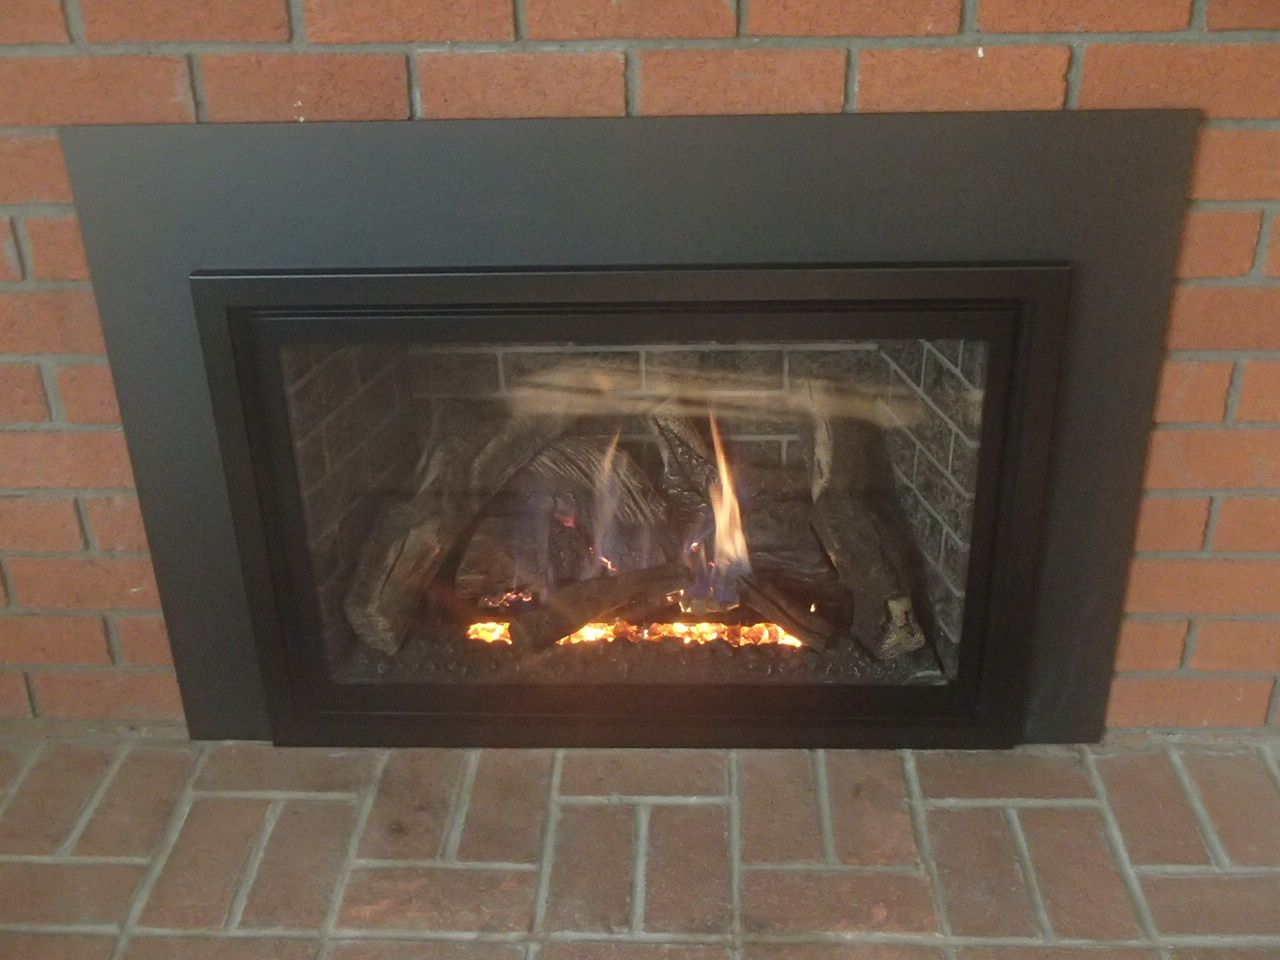 Completely Air Tight The Chaska 34 Gas Insert Was The Ideal